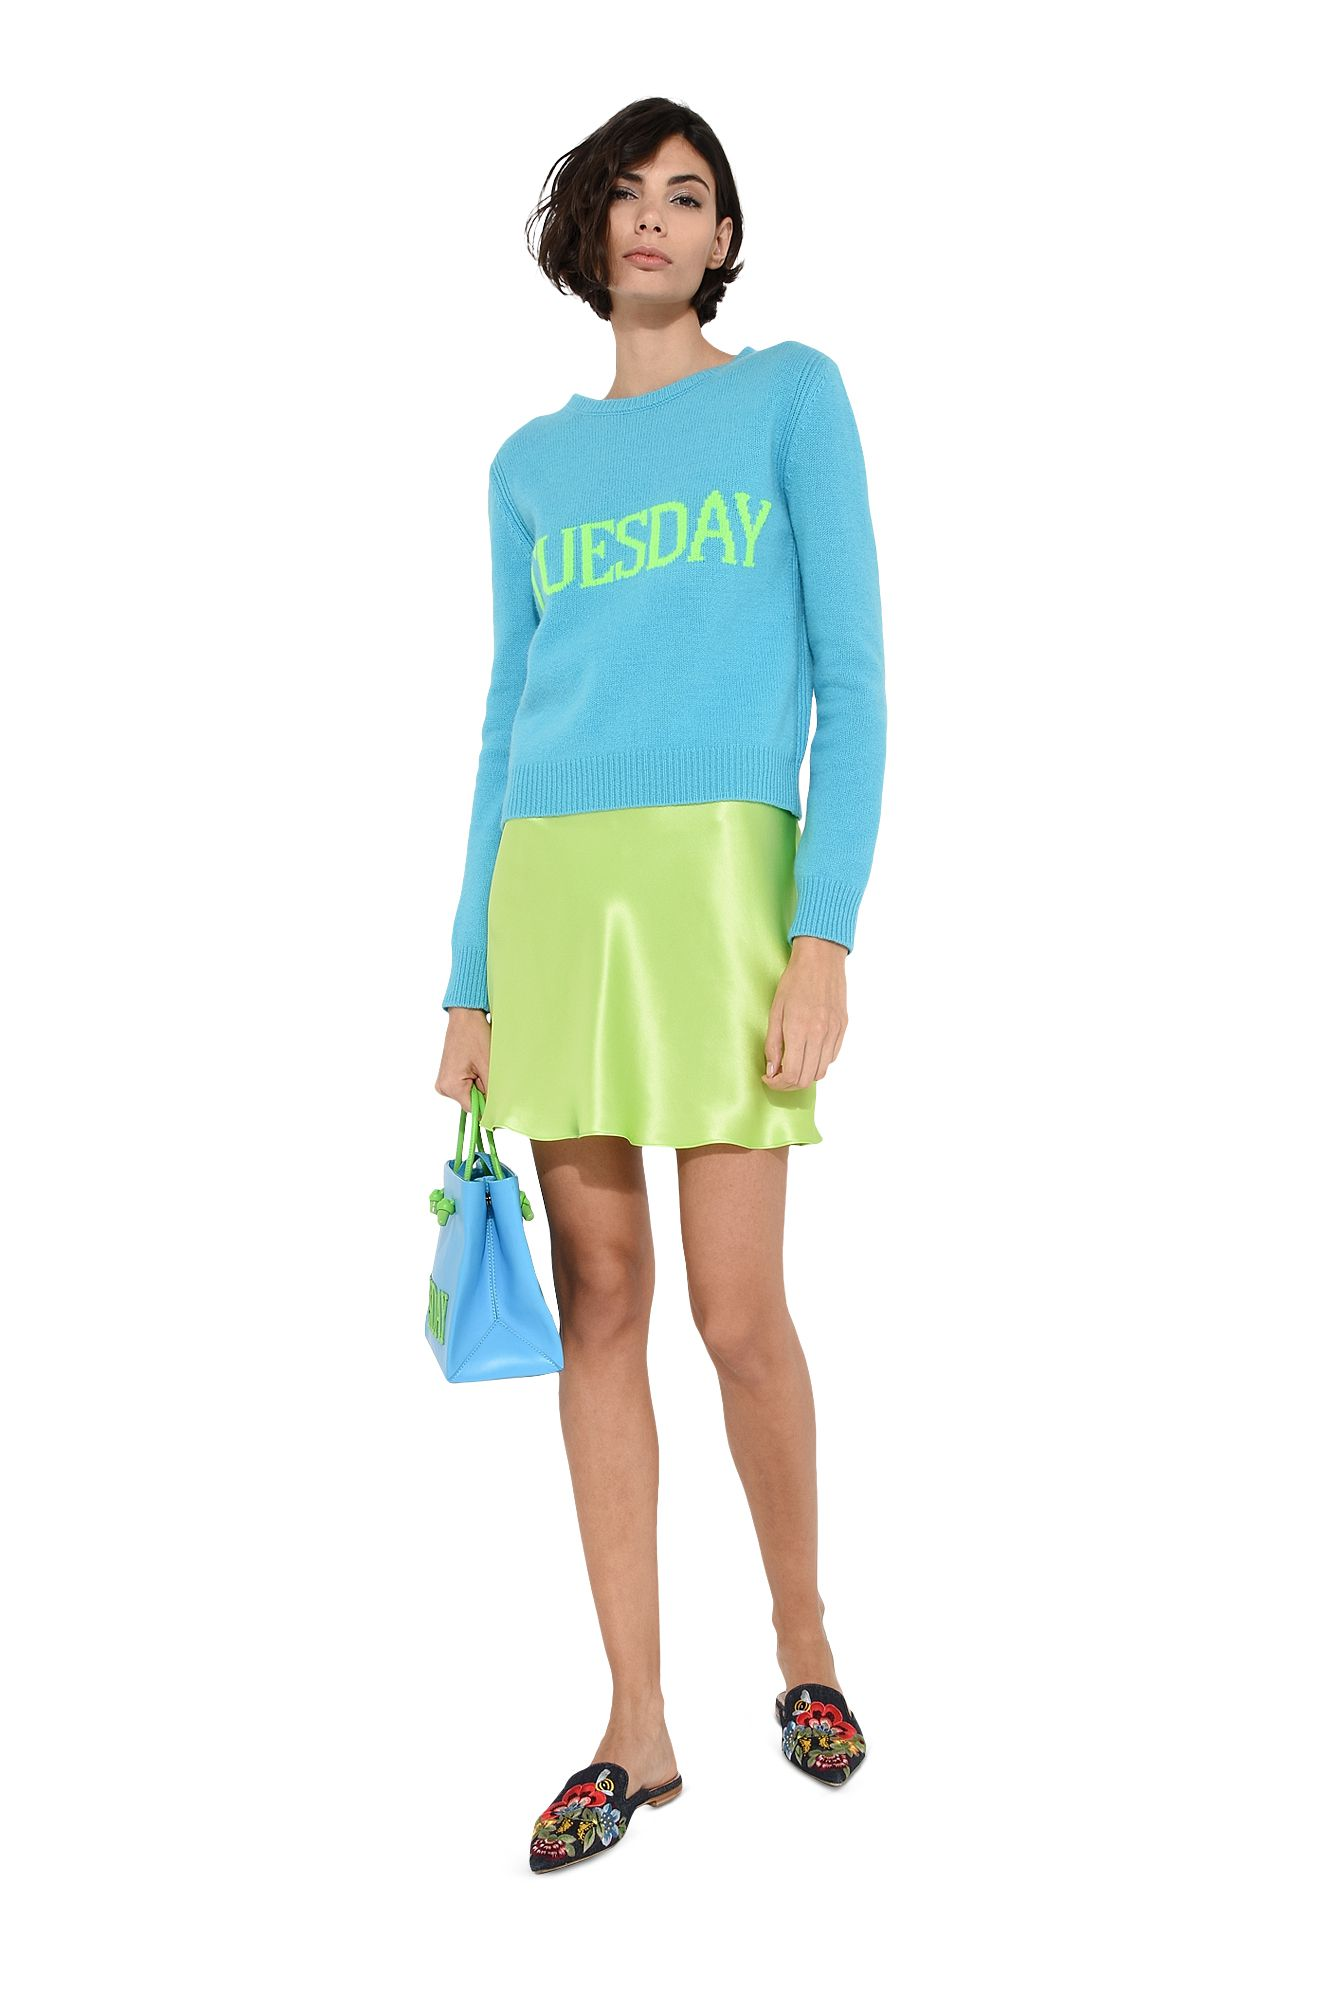 Tuesday fluo sweater